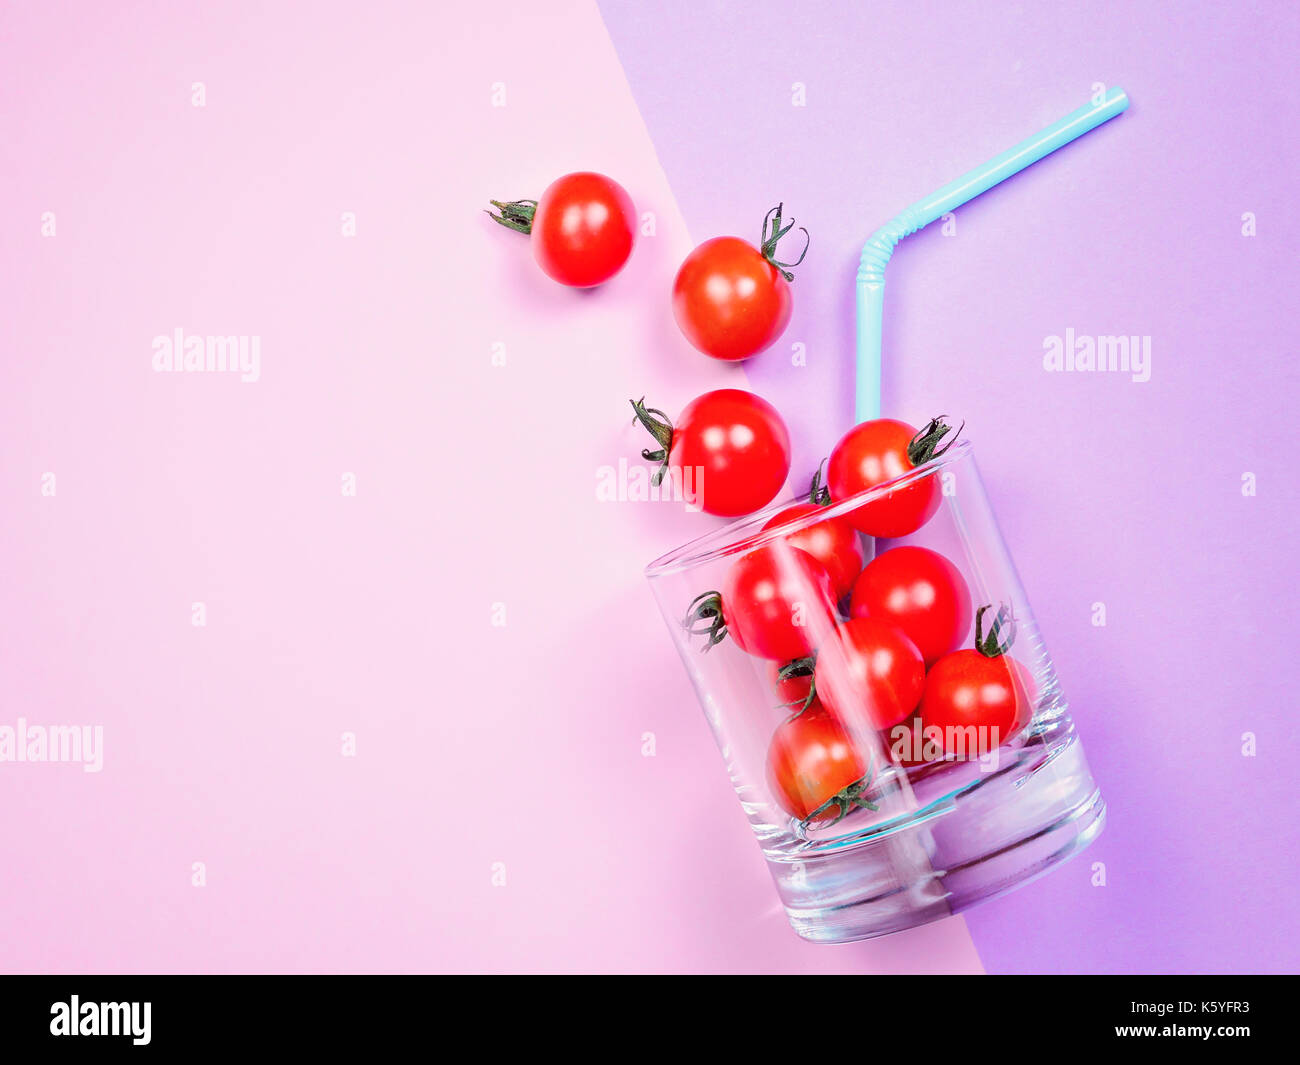 Tomato juice or smoothie, cherry tomato in drink glass with straw Stock Photo